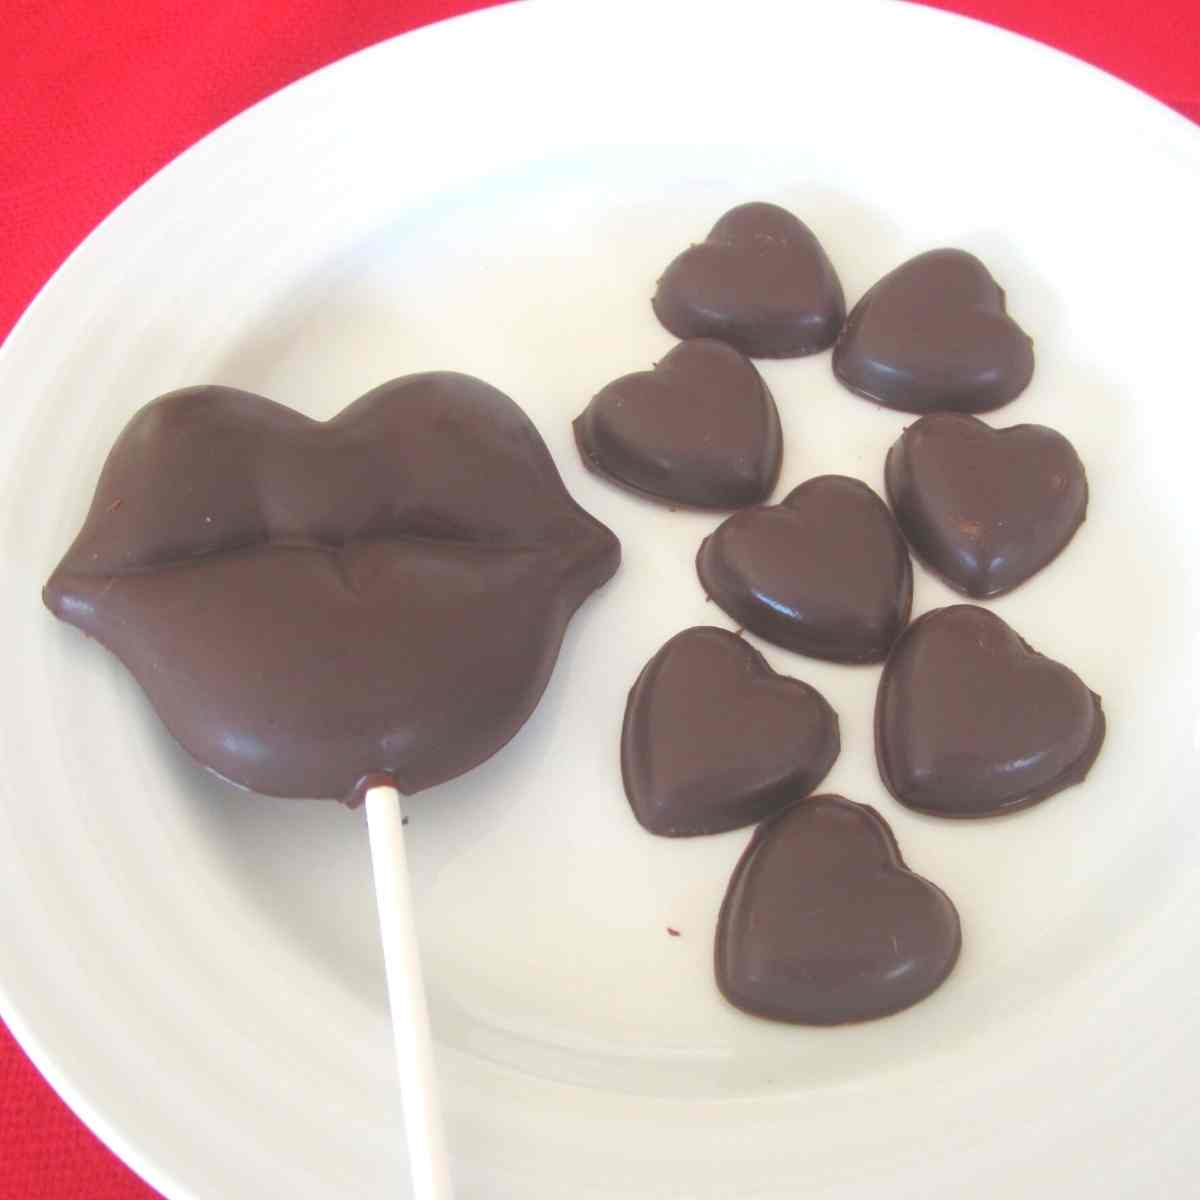 A plate with allergy free chocolate in heart and lip shapes